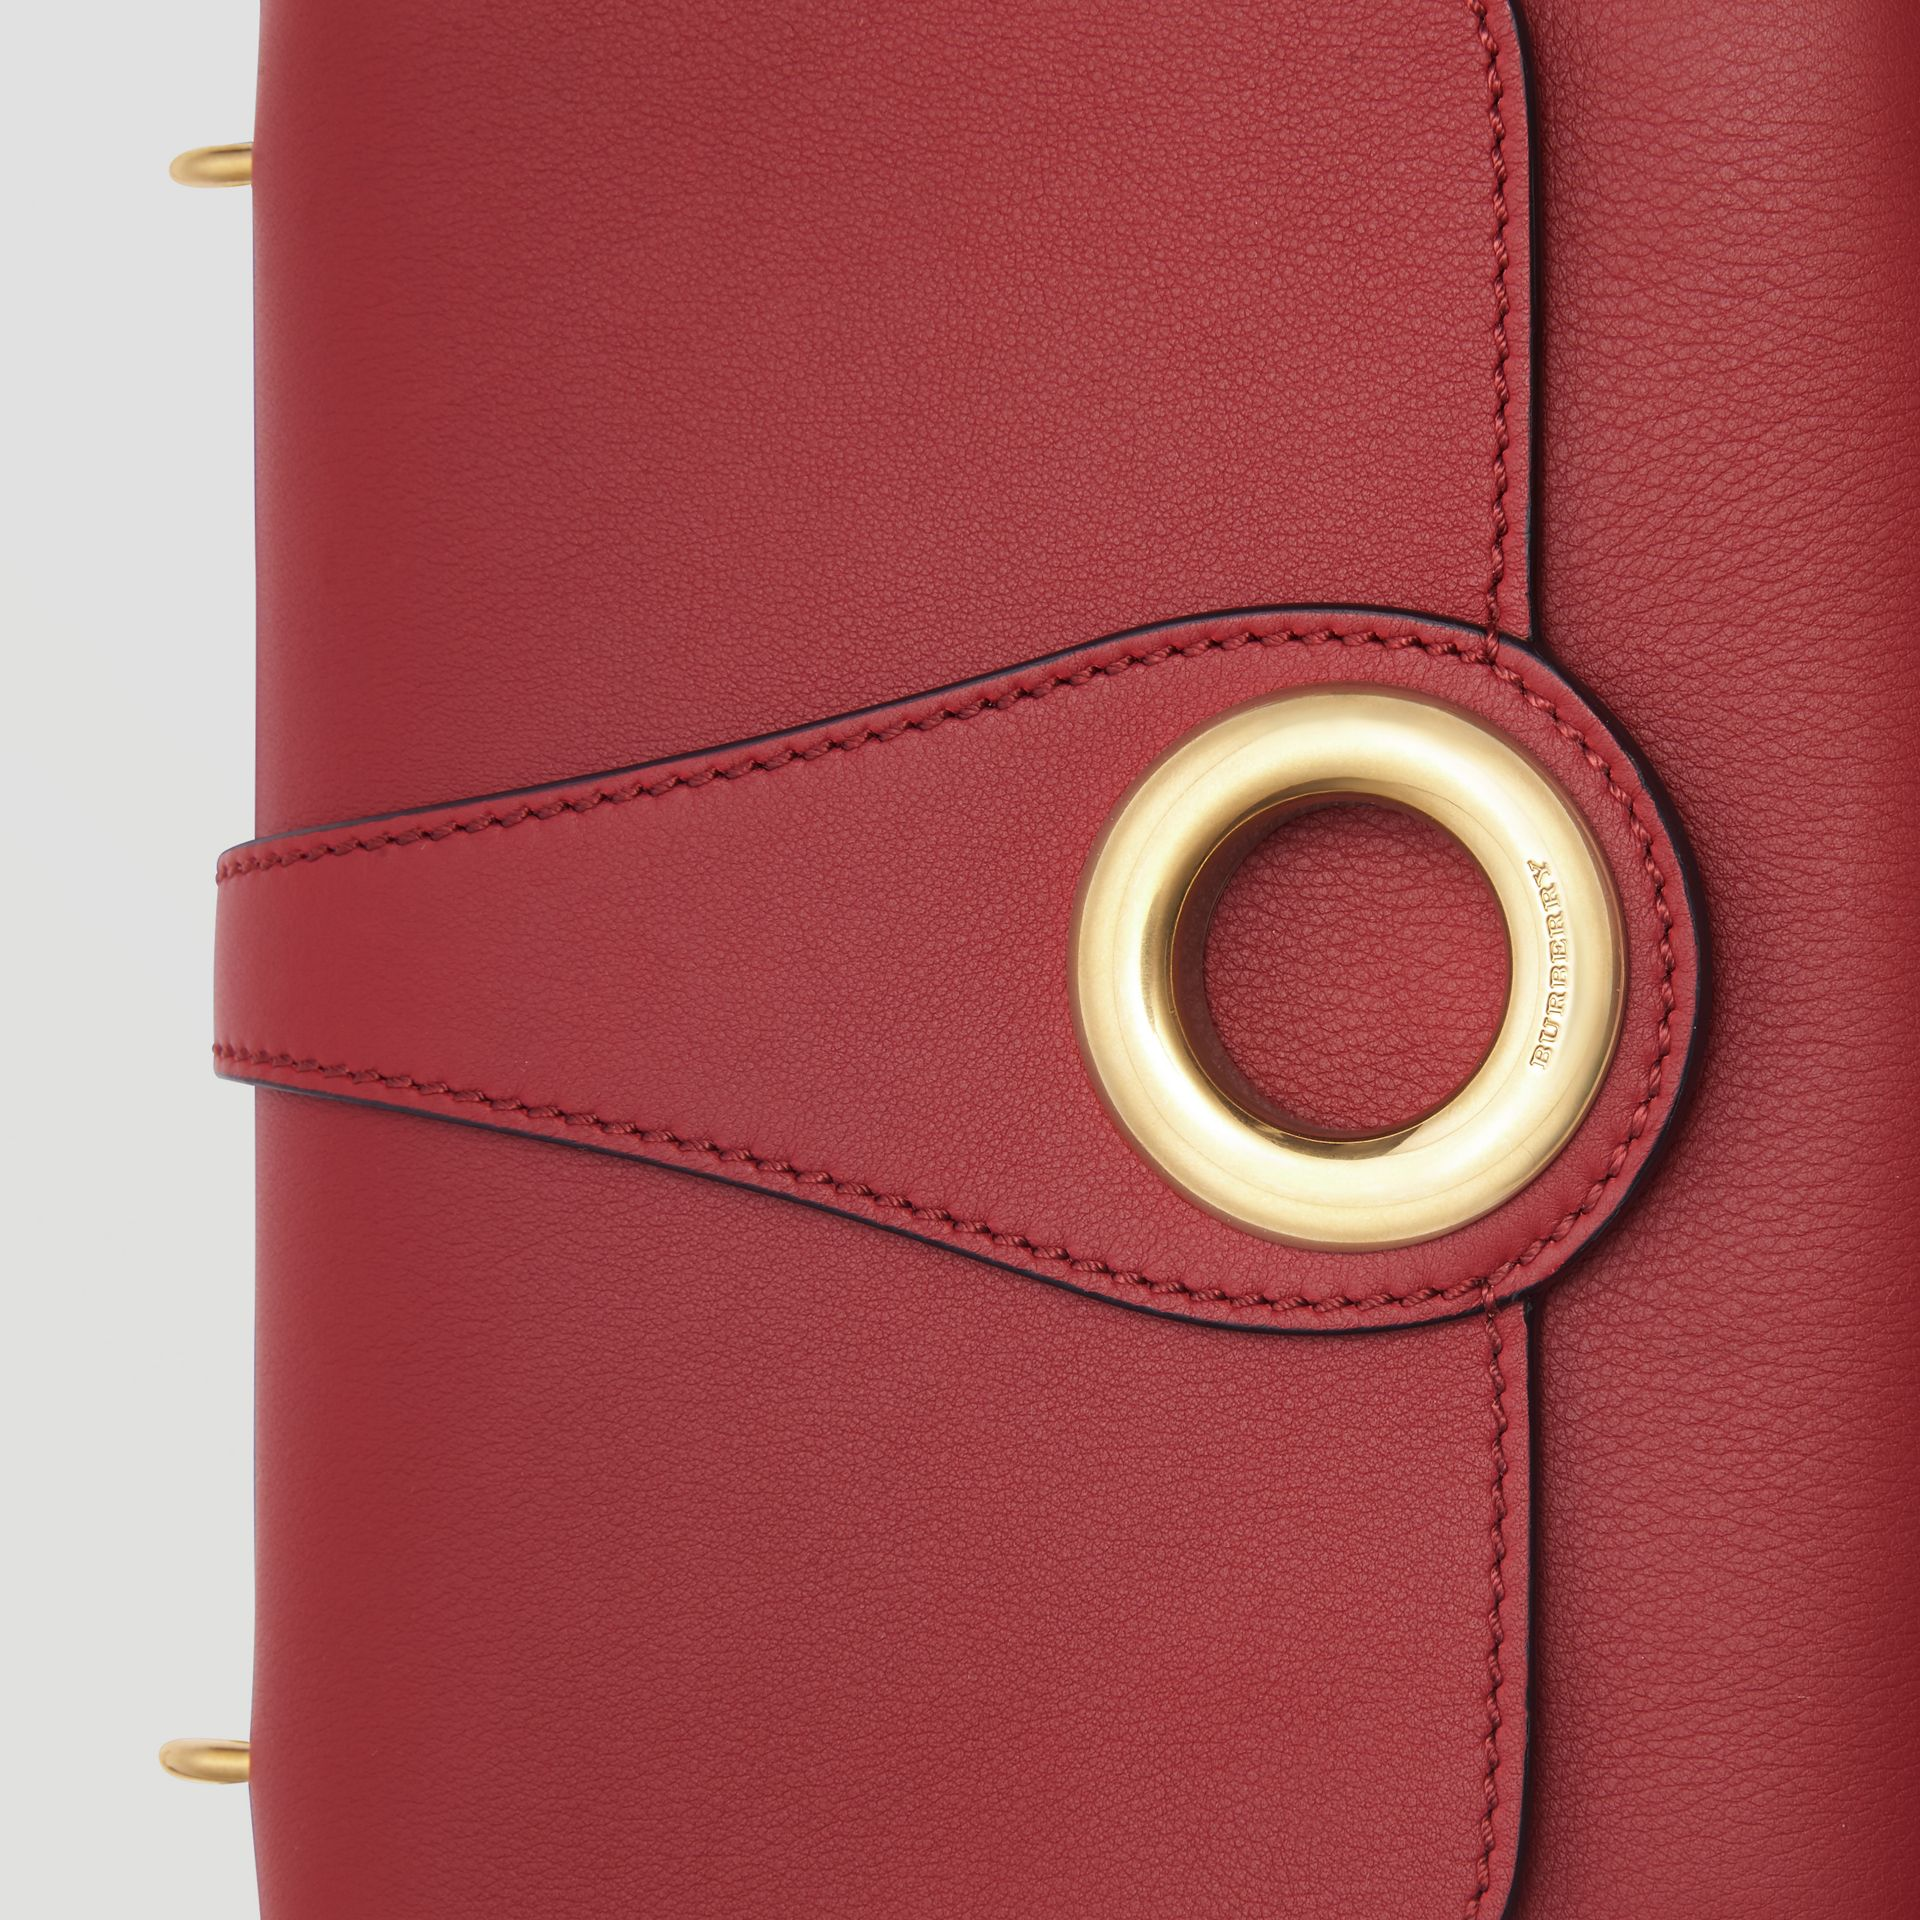 The Leather Grommet Detail Crossbody Bag in Crimson - Women | Burberry United States - gallery image 1